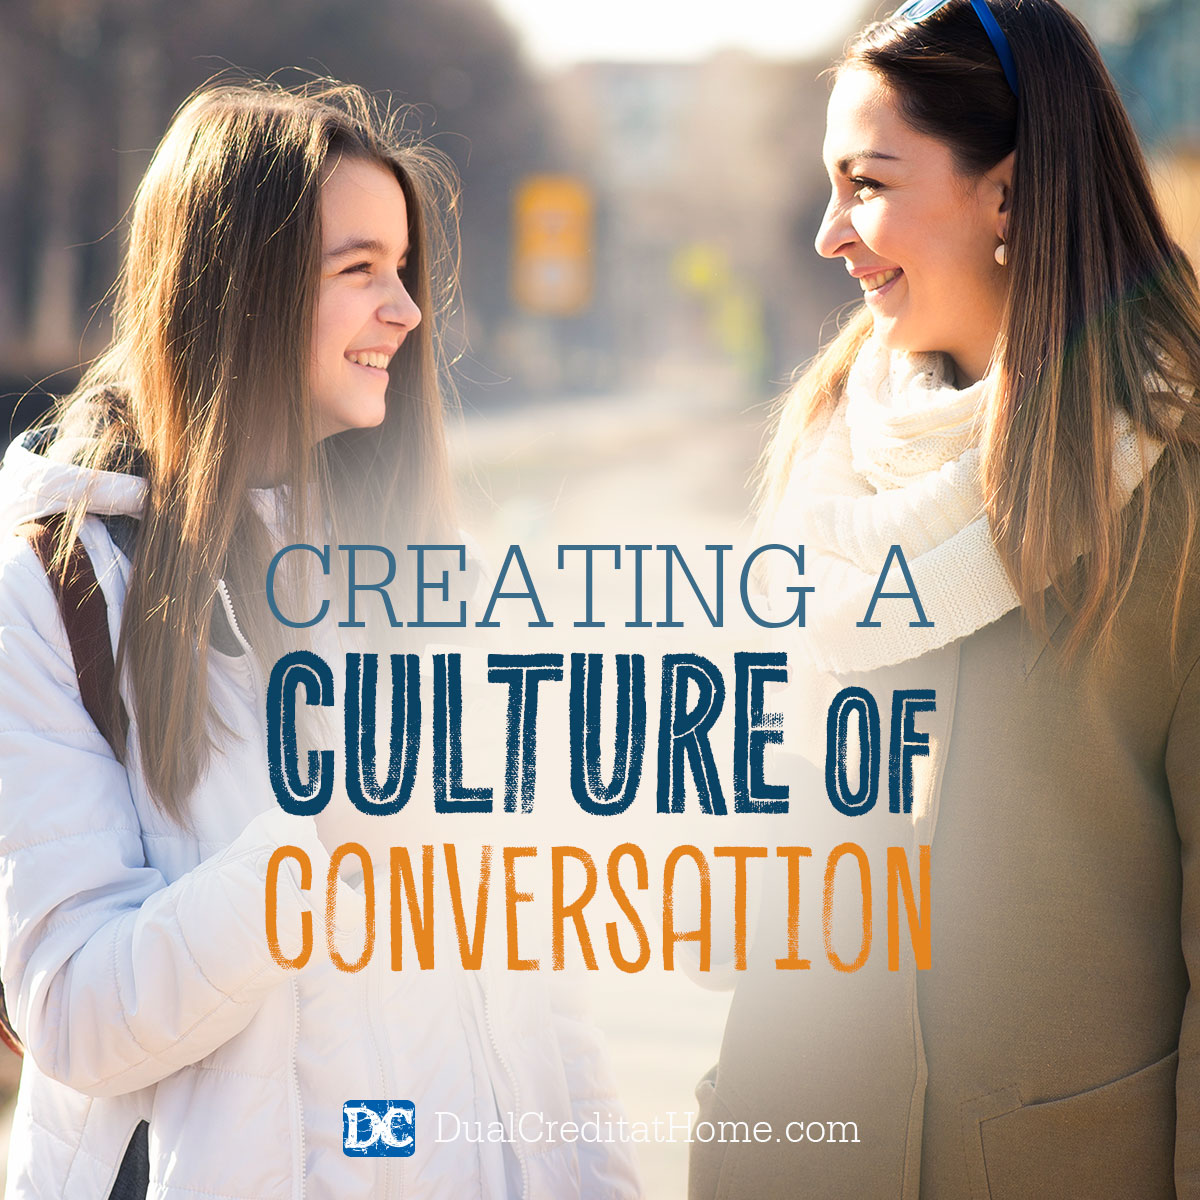 Creating a Culture of Conversation